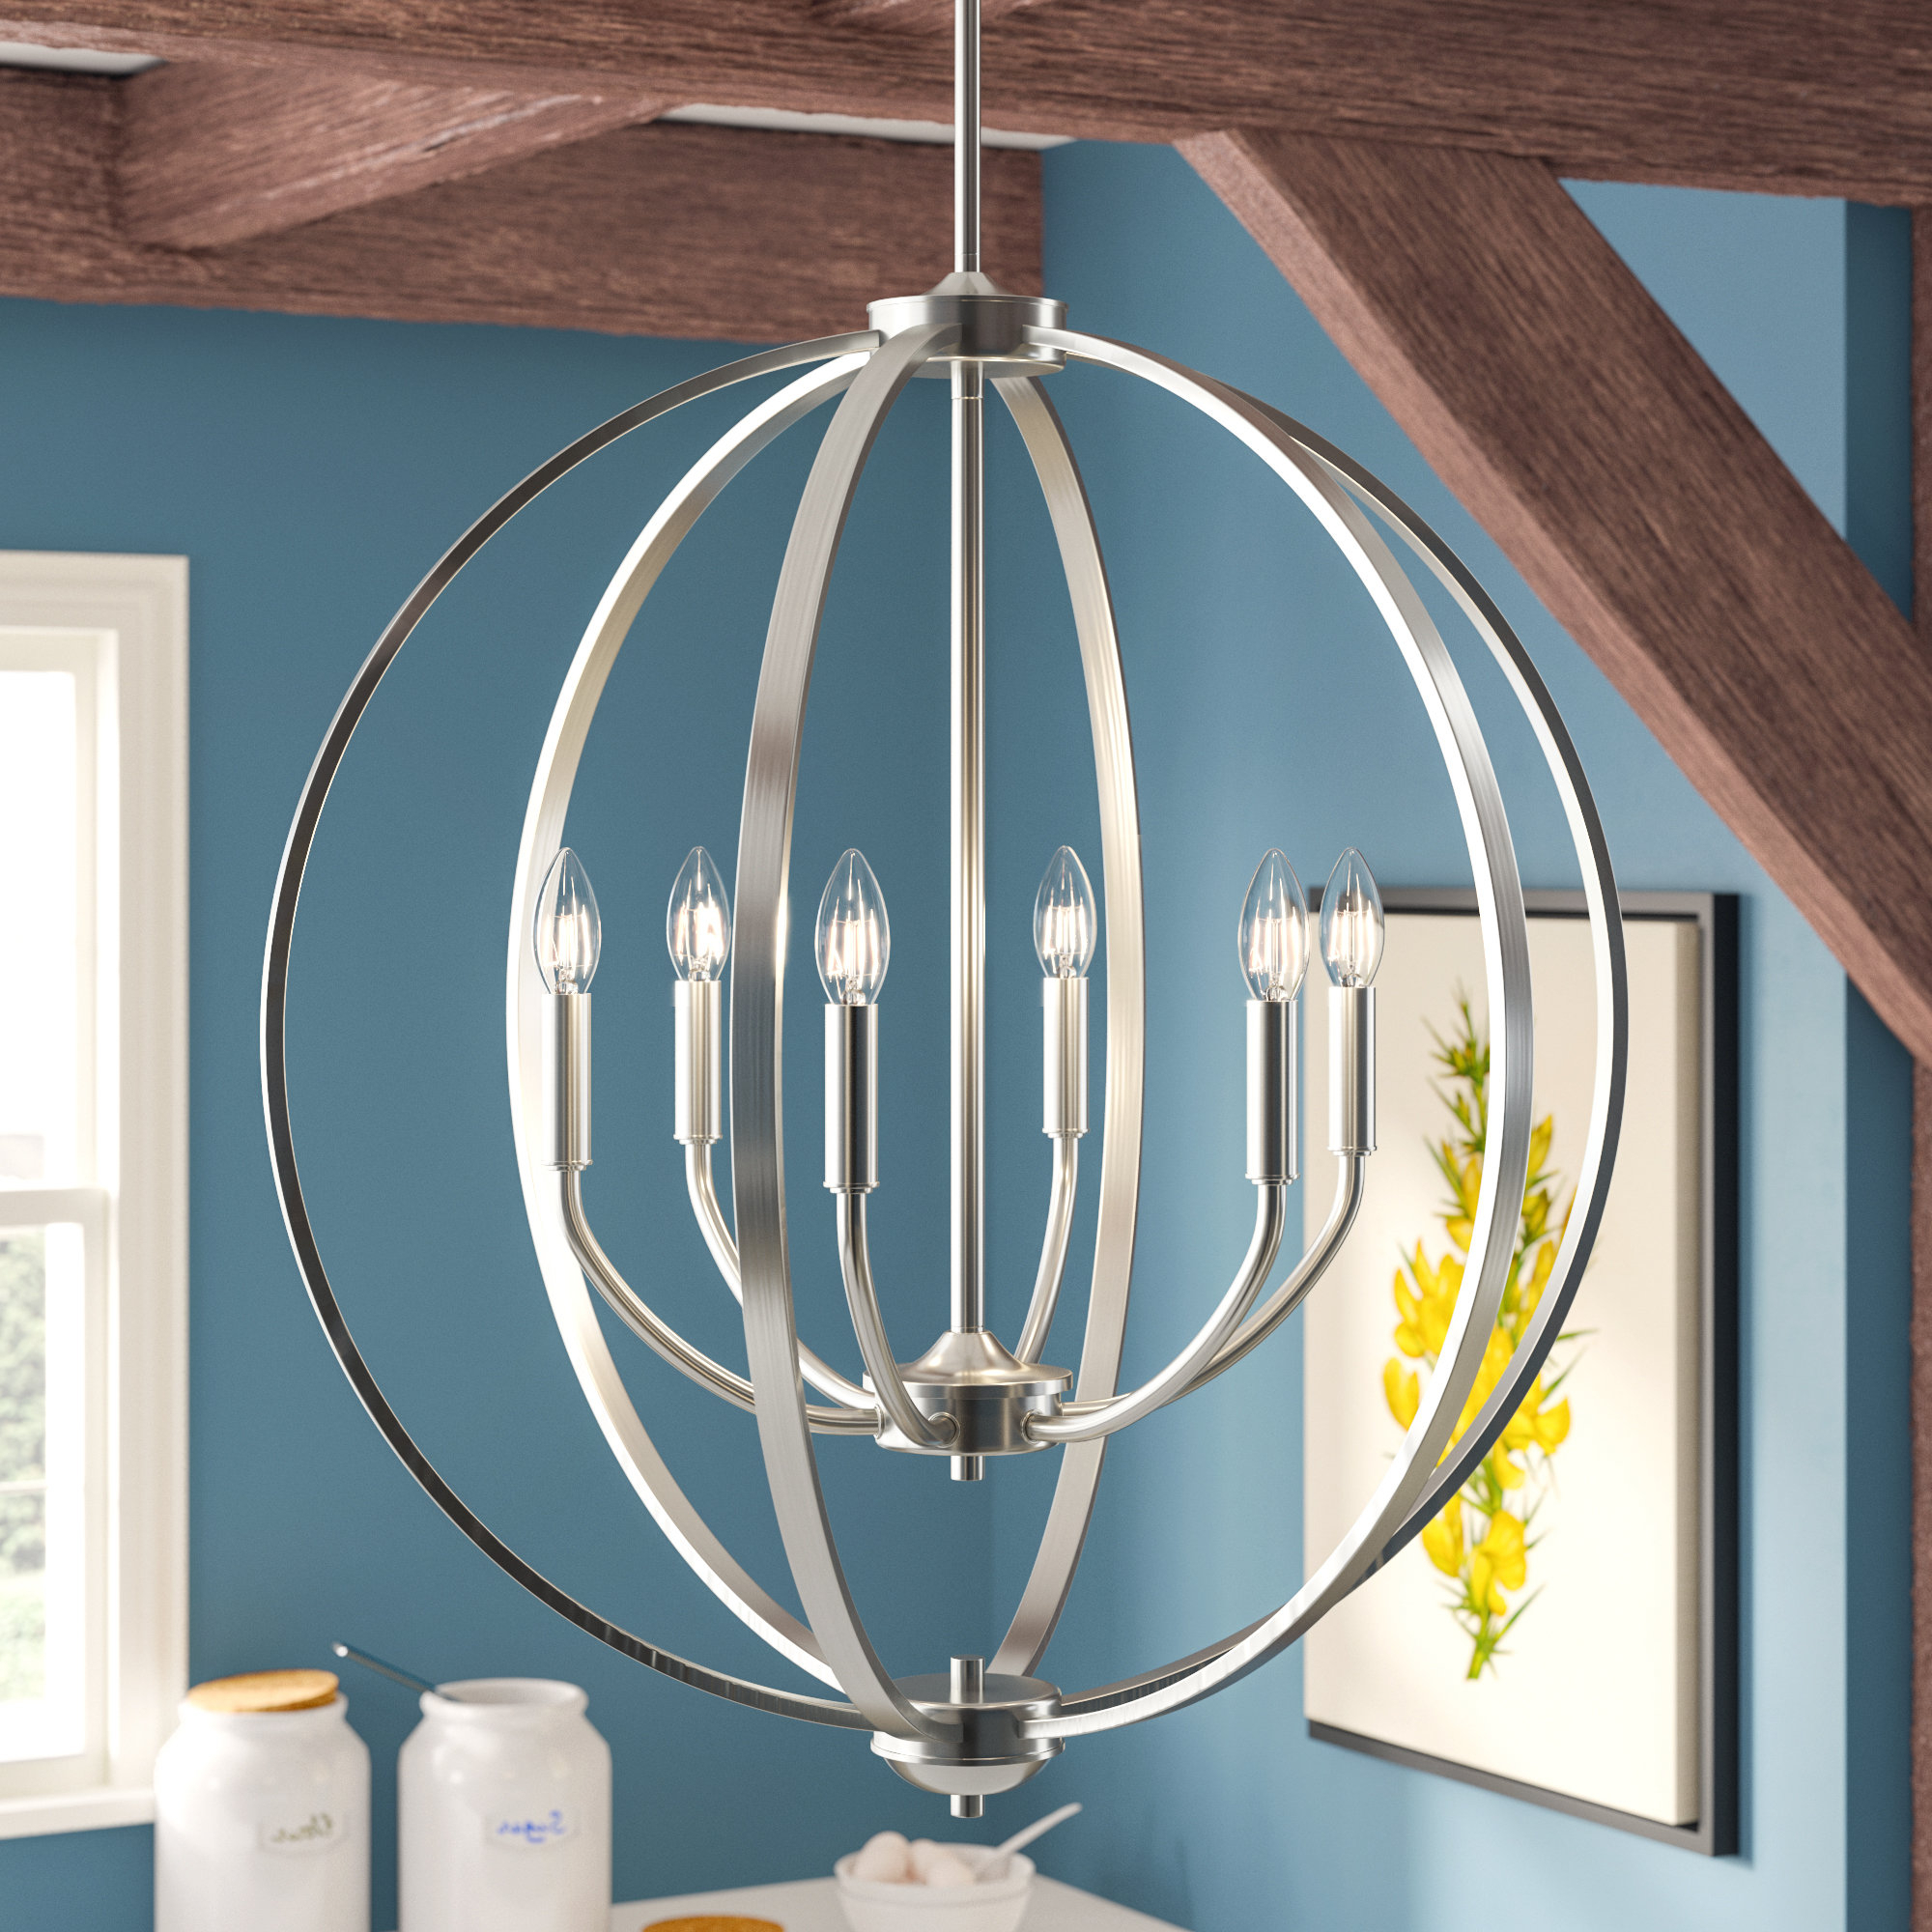 Fashionable Earlene 6 Light Globe Chandelier Pertaining To Gregoire 6 Light Globe Chandeliers (View 4 of 20)